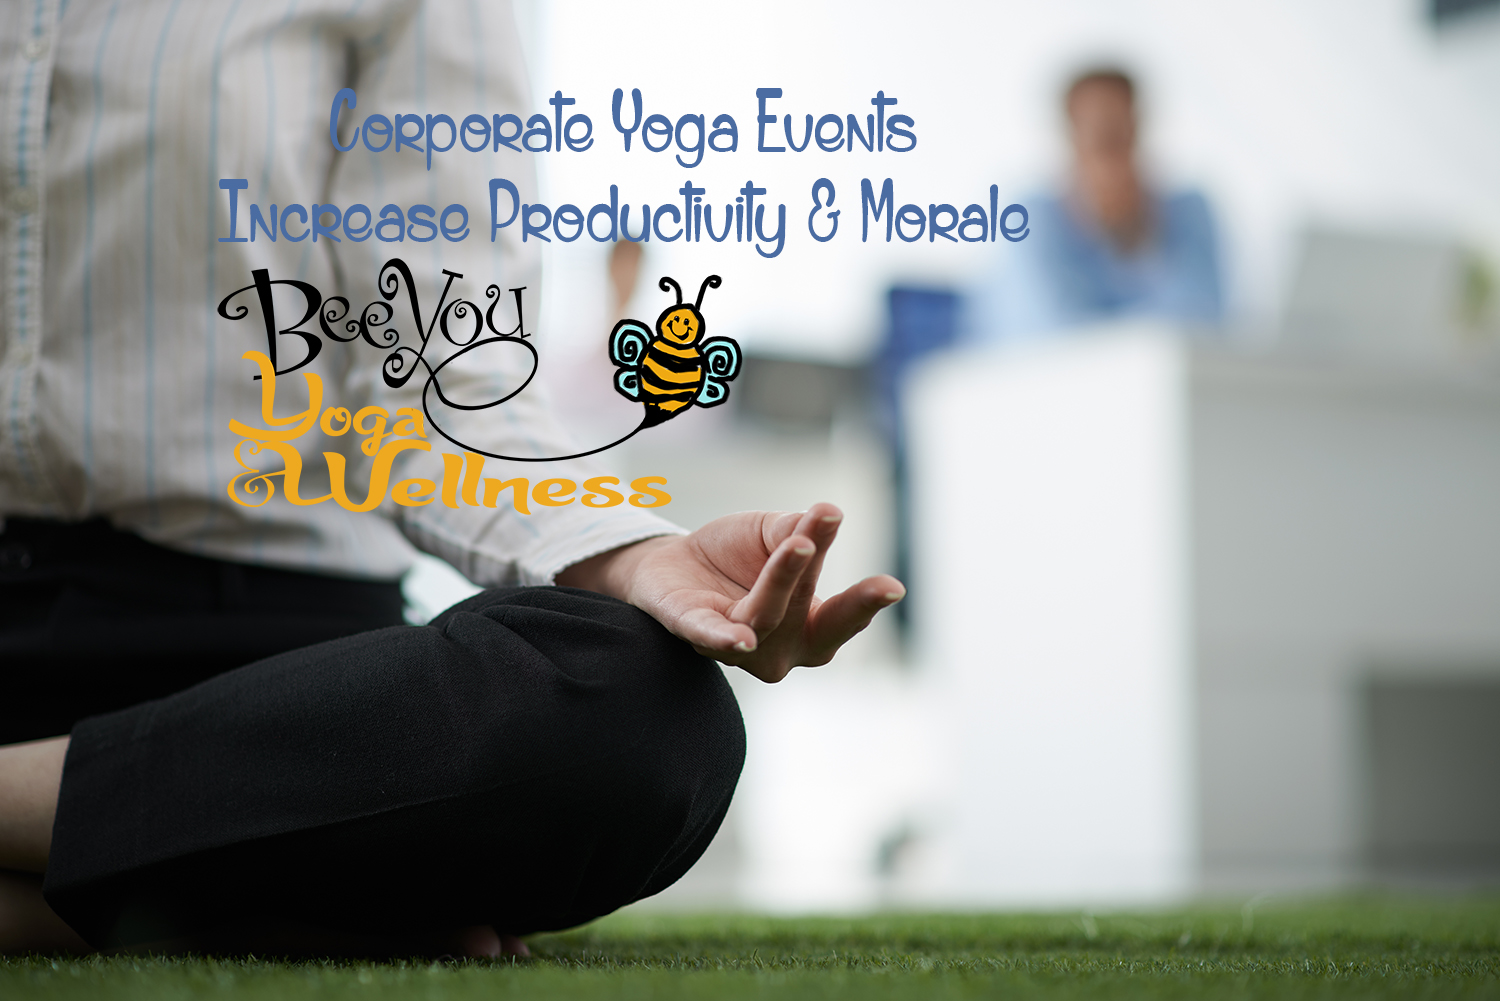 Bee You Yoga and Wellness Center - Yoga, myofascial release treatment, massage, mindfullness, meditation, halotherapy, salt room, salt room yoga, halotherapy yoga, salt therapy, reiki, Aerial yoga, Juice bar, coffee